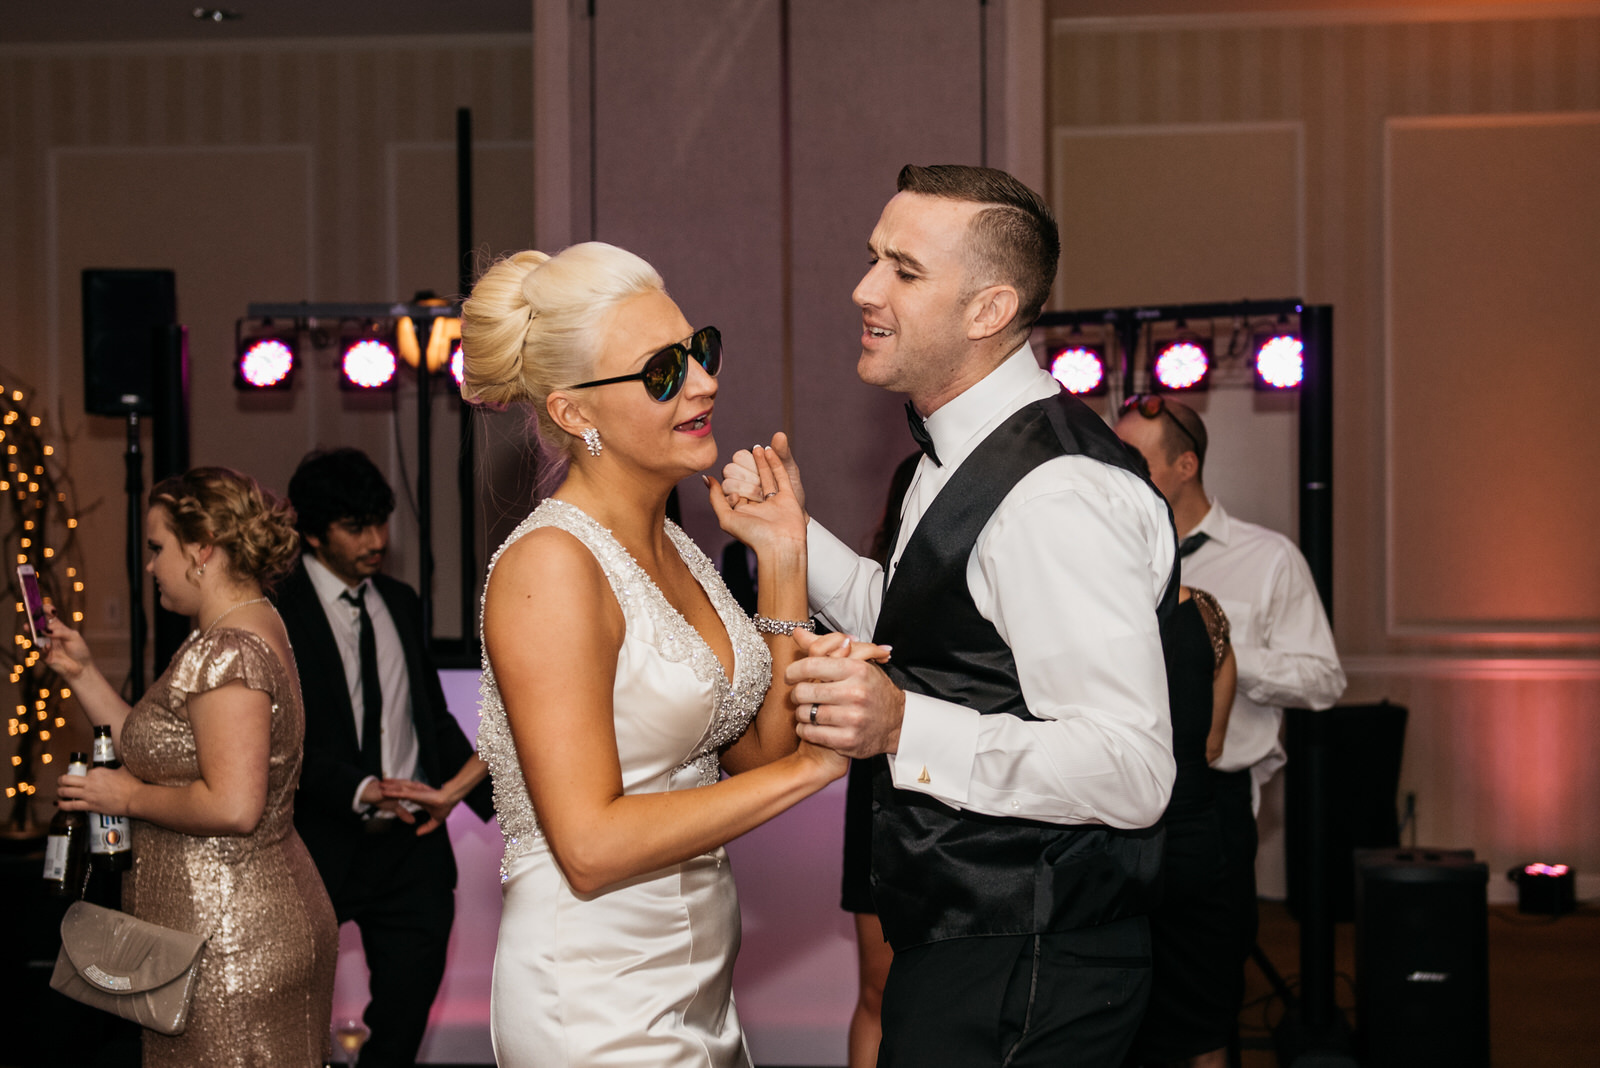 hilton_garden_inn_southpointe_pittsburgh_weddings_94.jpg